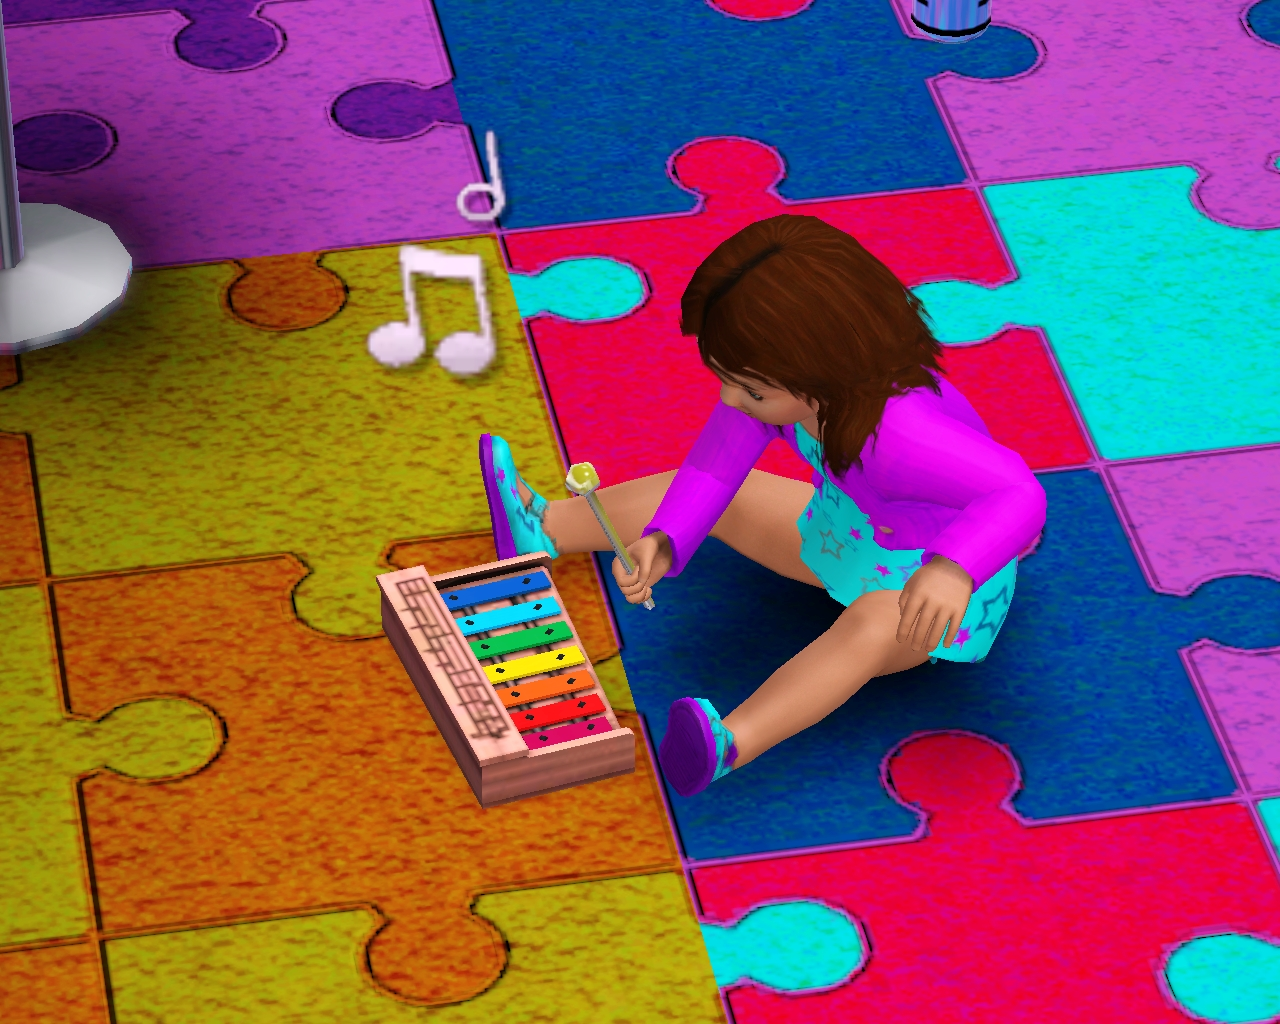 Baby playing with xylophone. Toddler   The Sims Wiki   Fandom powered by Wikia